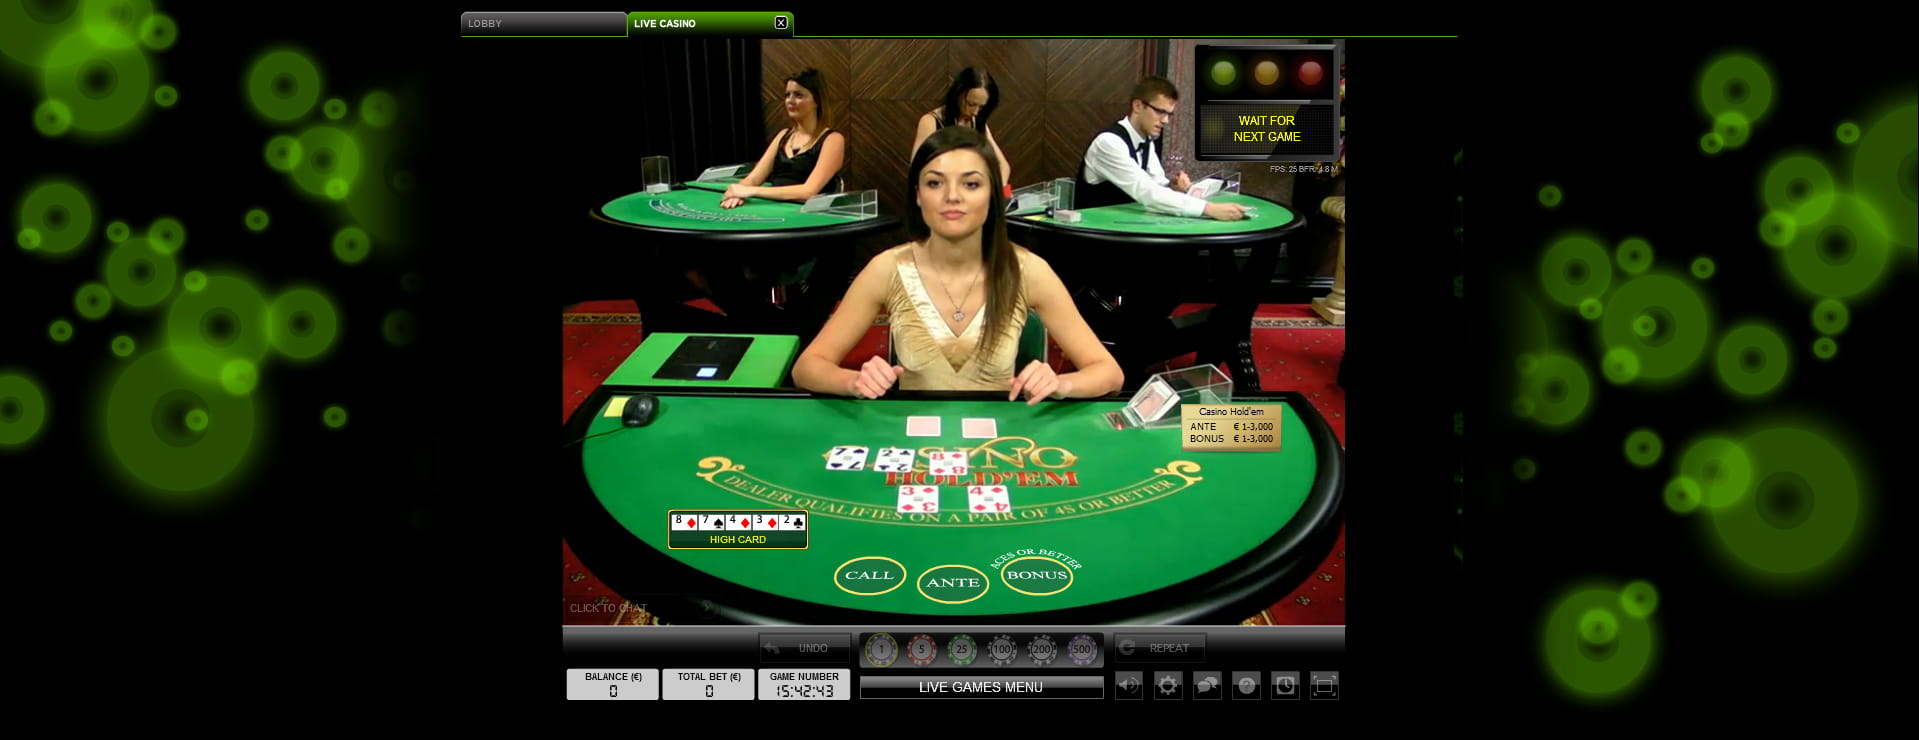 Play Live Casino Hold'em Online at Casino.com India